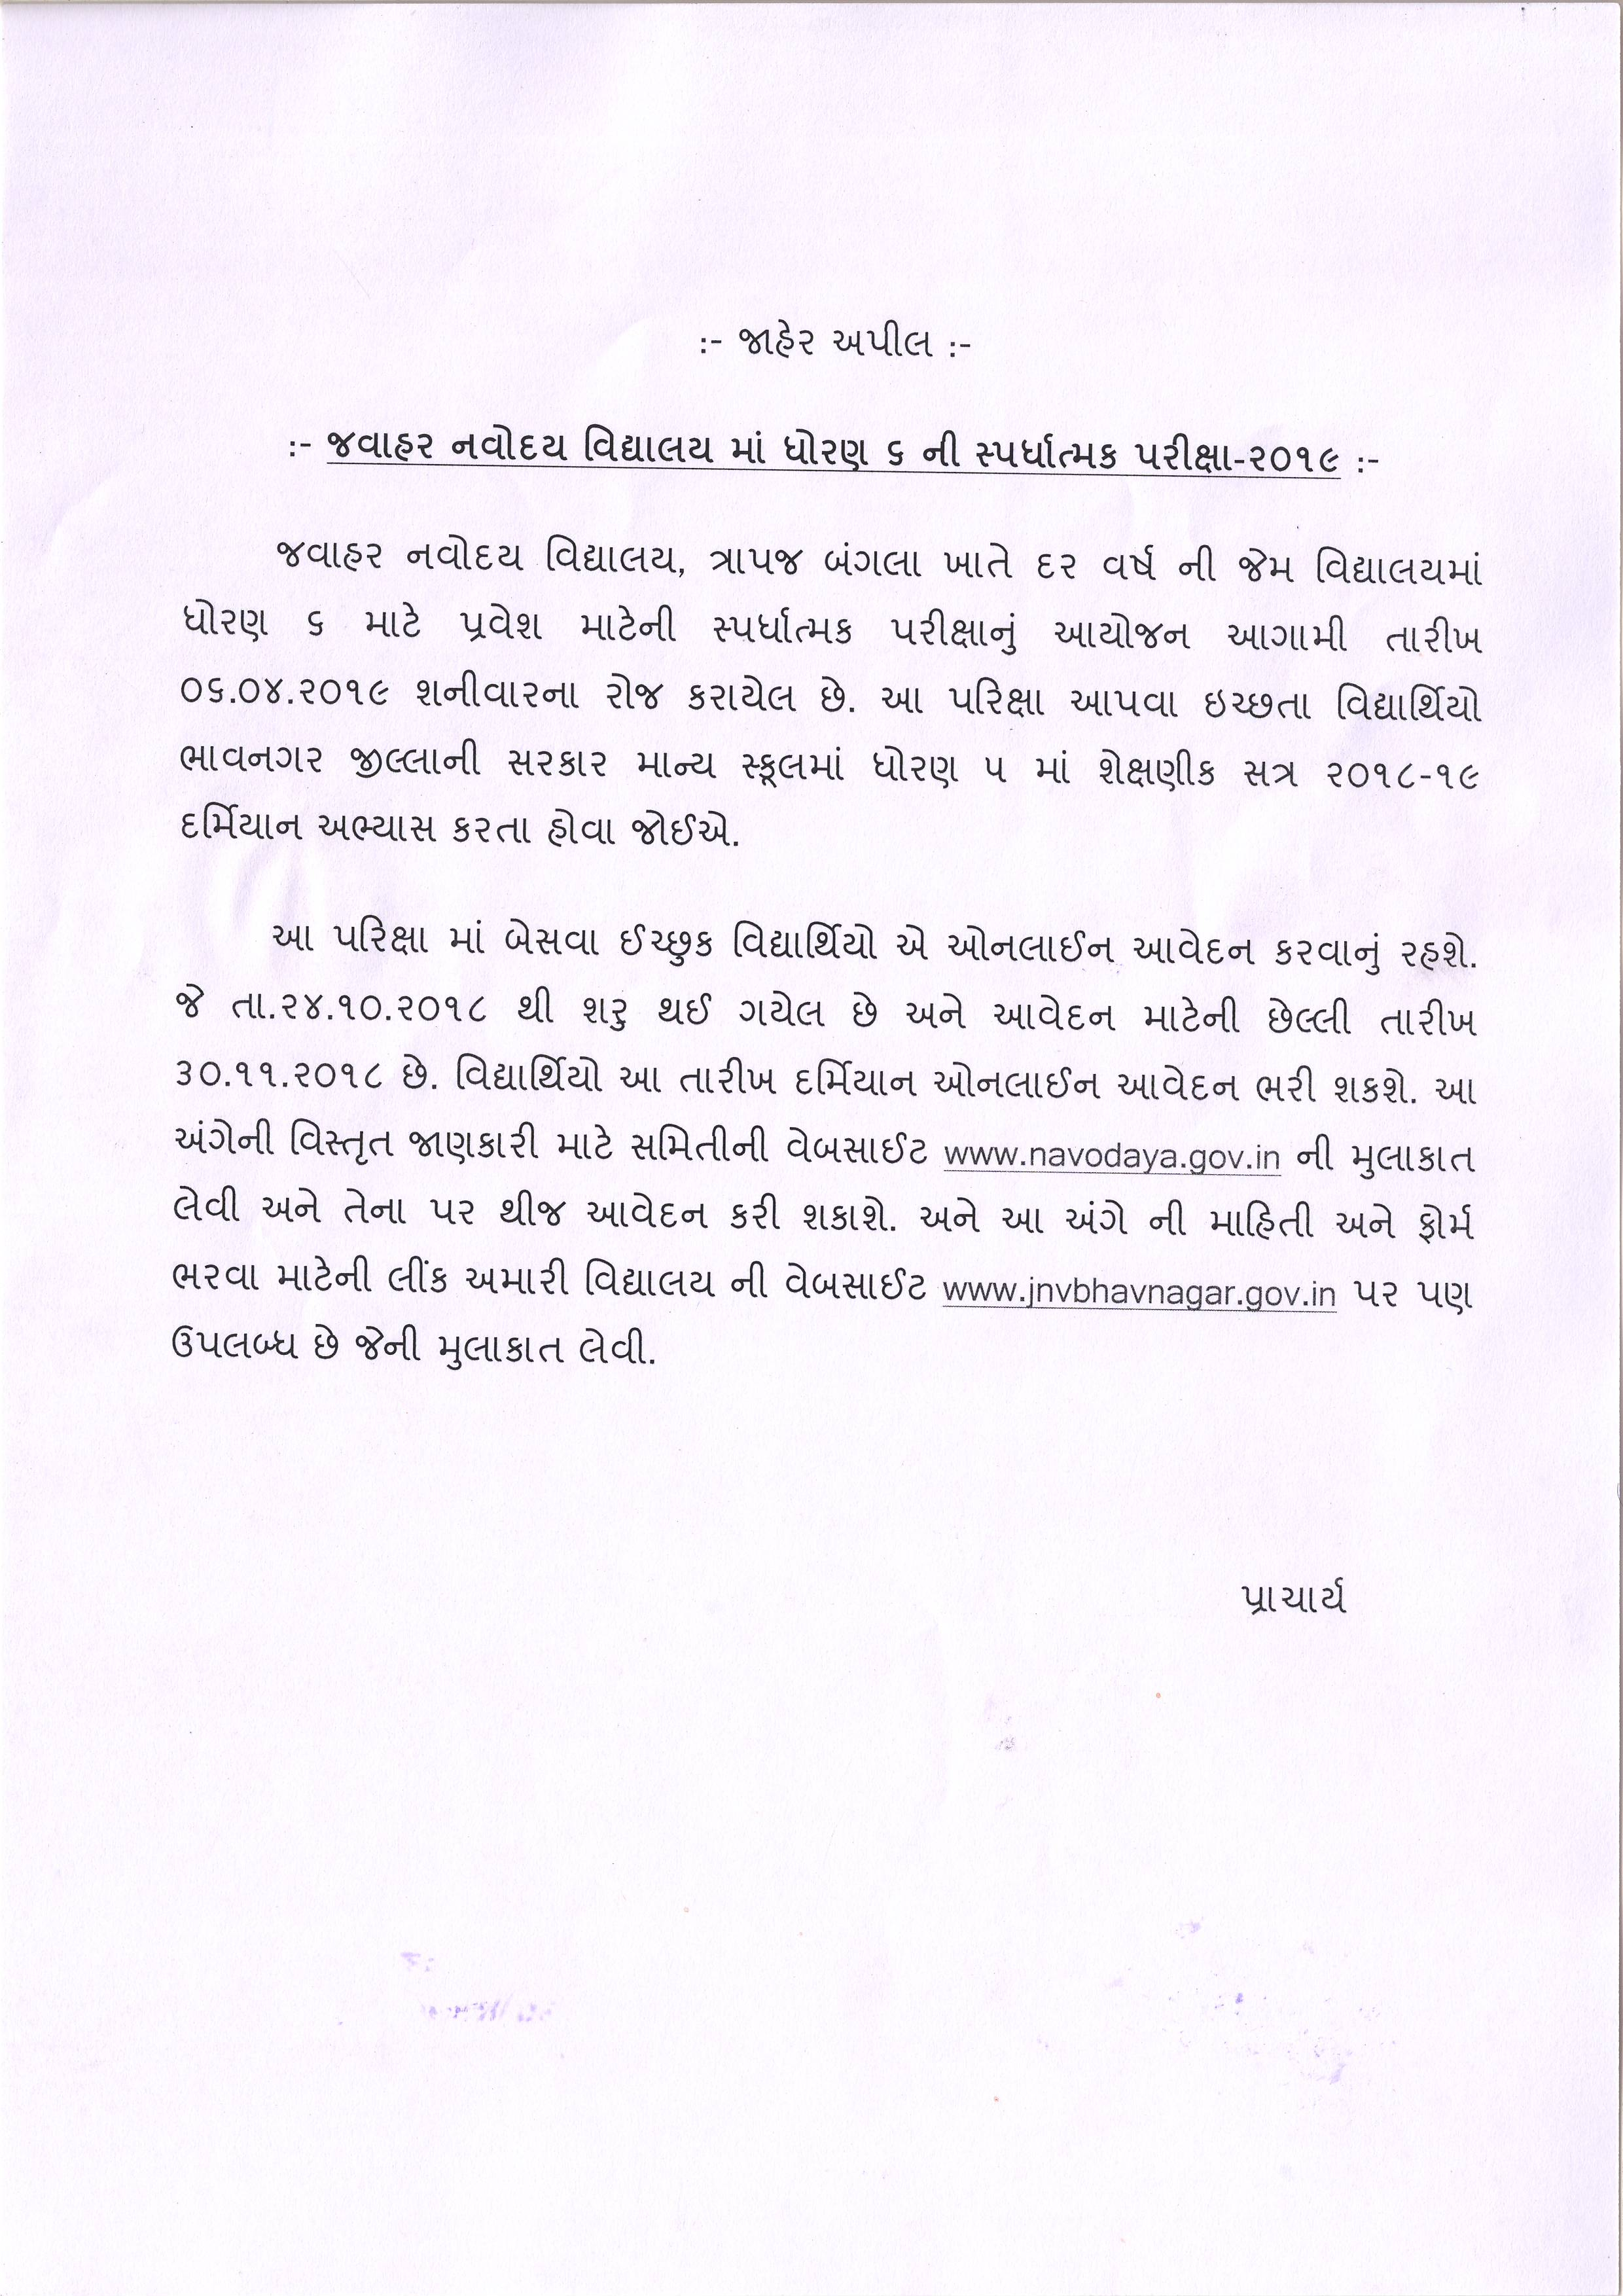 Jawahar Navodaya Vidyalaya Bhavnagar :: on letter of intent for teacher, sample resume for teacher, letter of interest for teacher, to write a letter thanking for teacher, professional cover letter for teacher, appreciation letter for teacher, parent letter from teacher, referral letter for teacher, letter of introduction for teacher, letter of recommendation for teacher, sample letter to teacher, printable job application for teacher, sample recommendation letter for teacher, sample cover letter examples for teacher, sample job application for teacher, letters for your teacher, resignation letter for teacher, job application as school teacher, appointment letter for teacher, education for teacher,